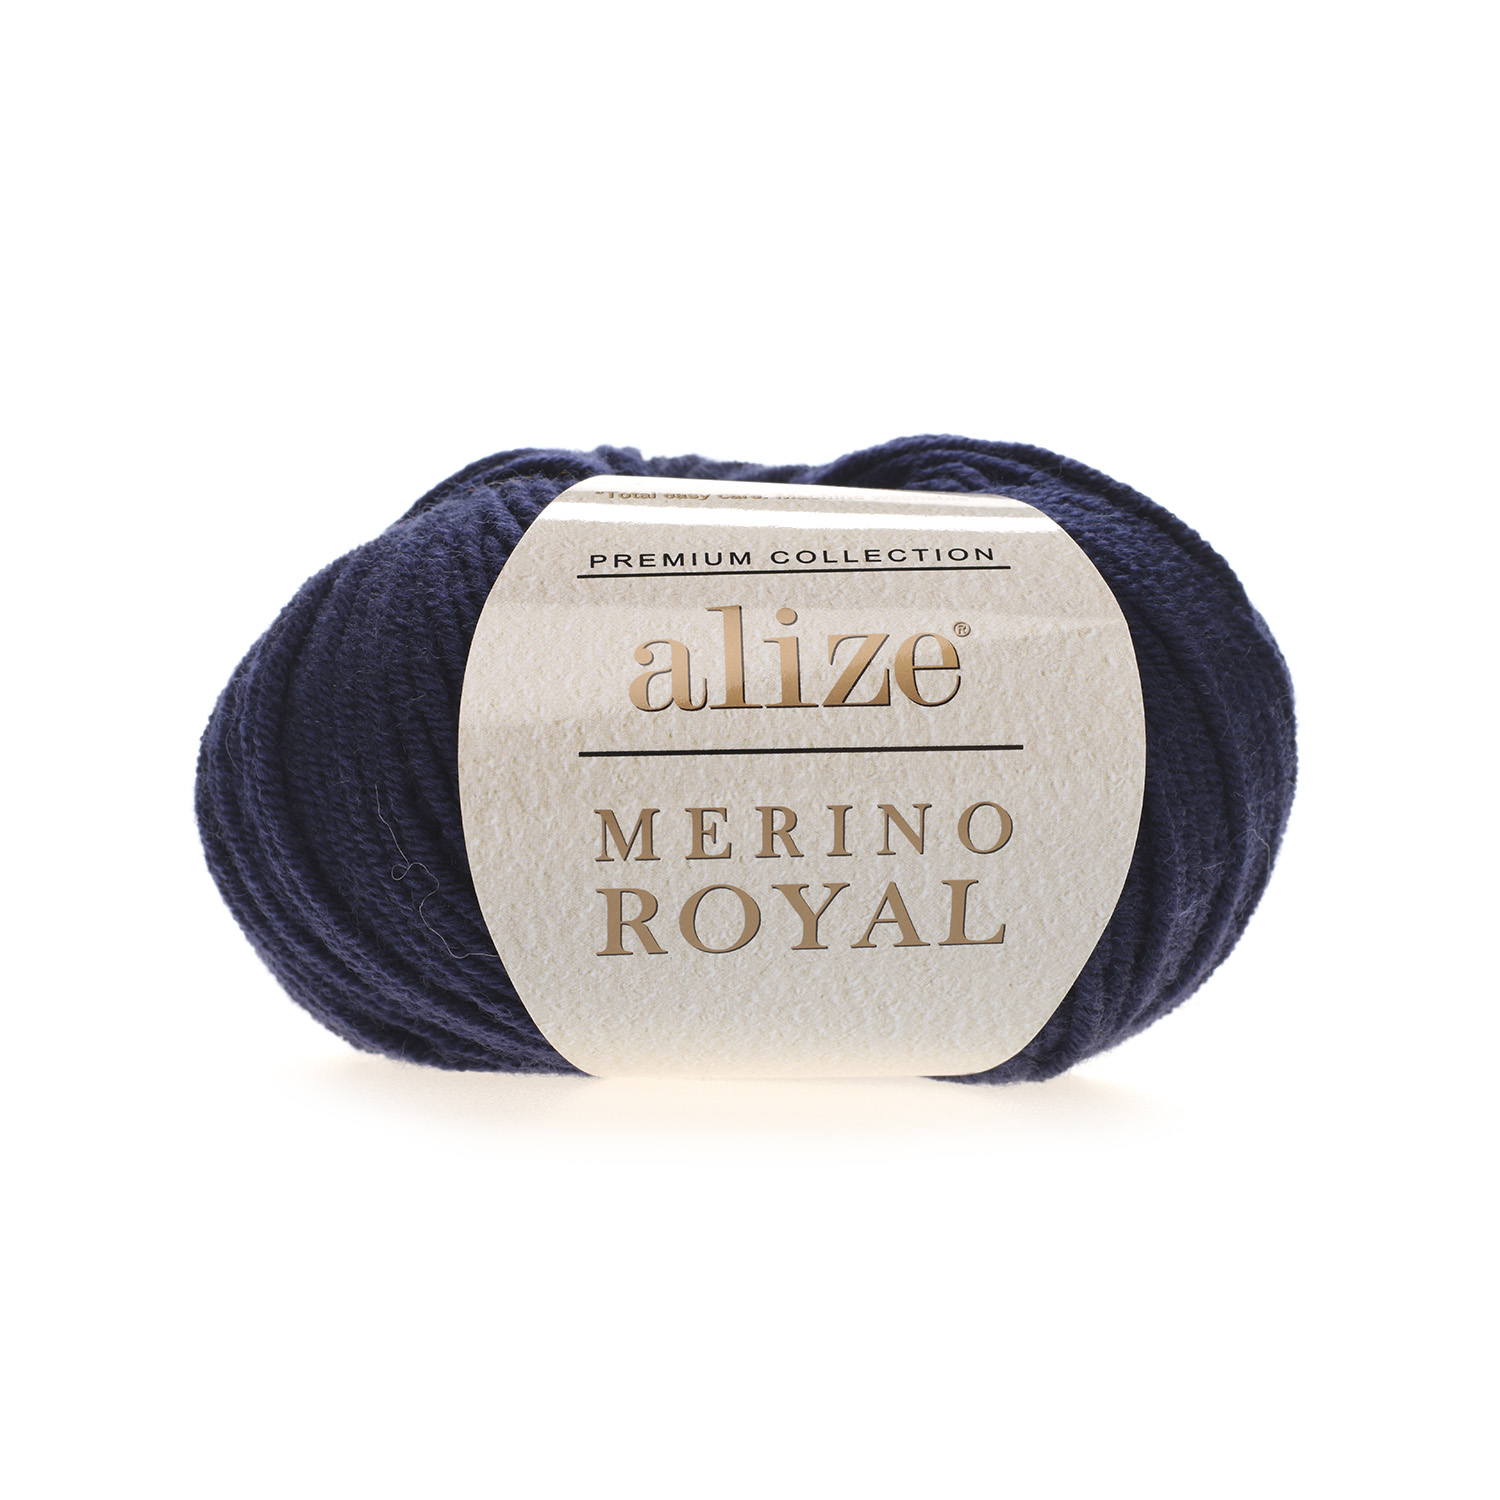 Tmavo modrá 100% merino vlna Merino Royal 58 (Superwash)